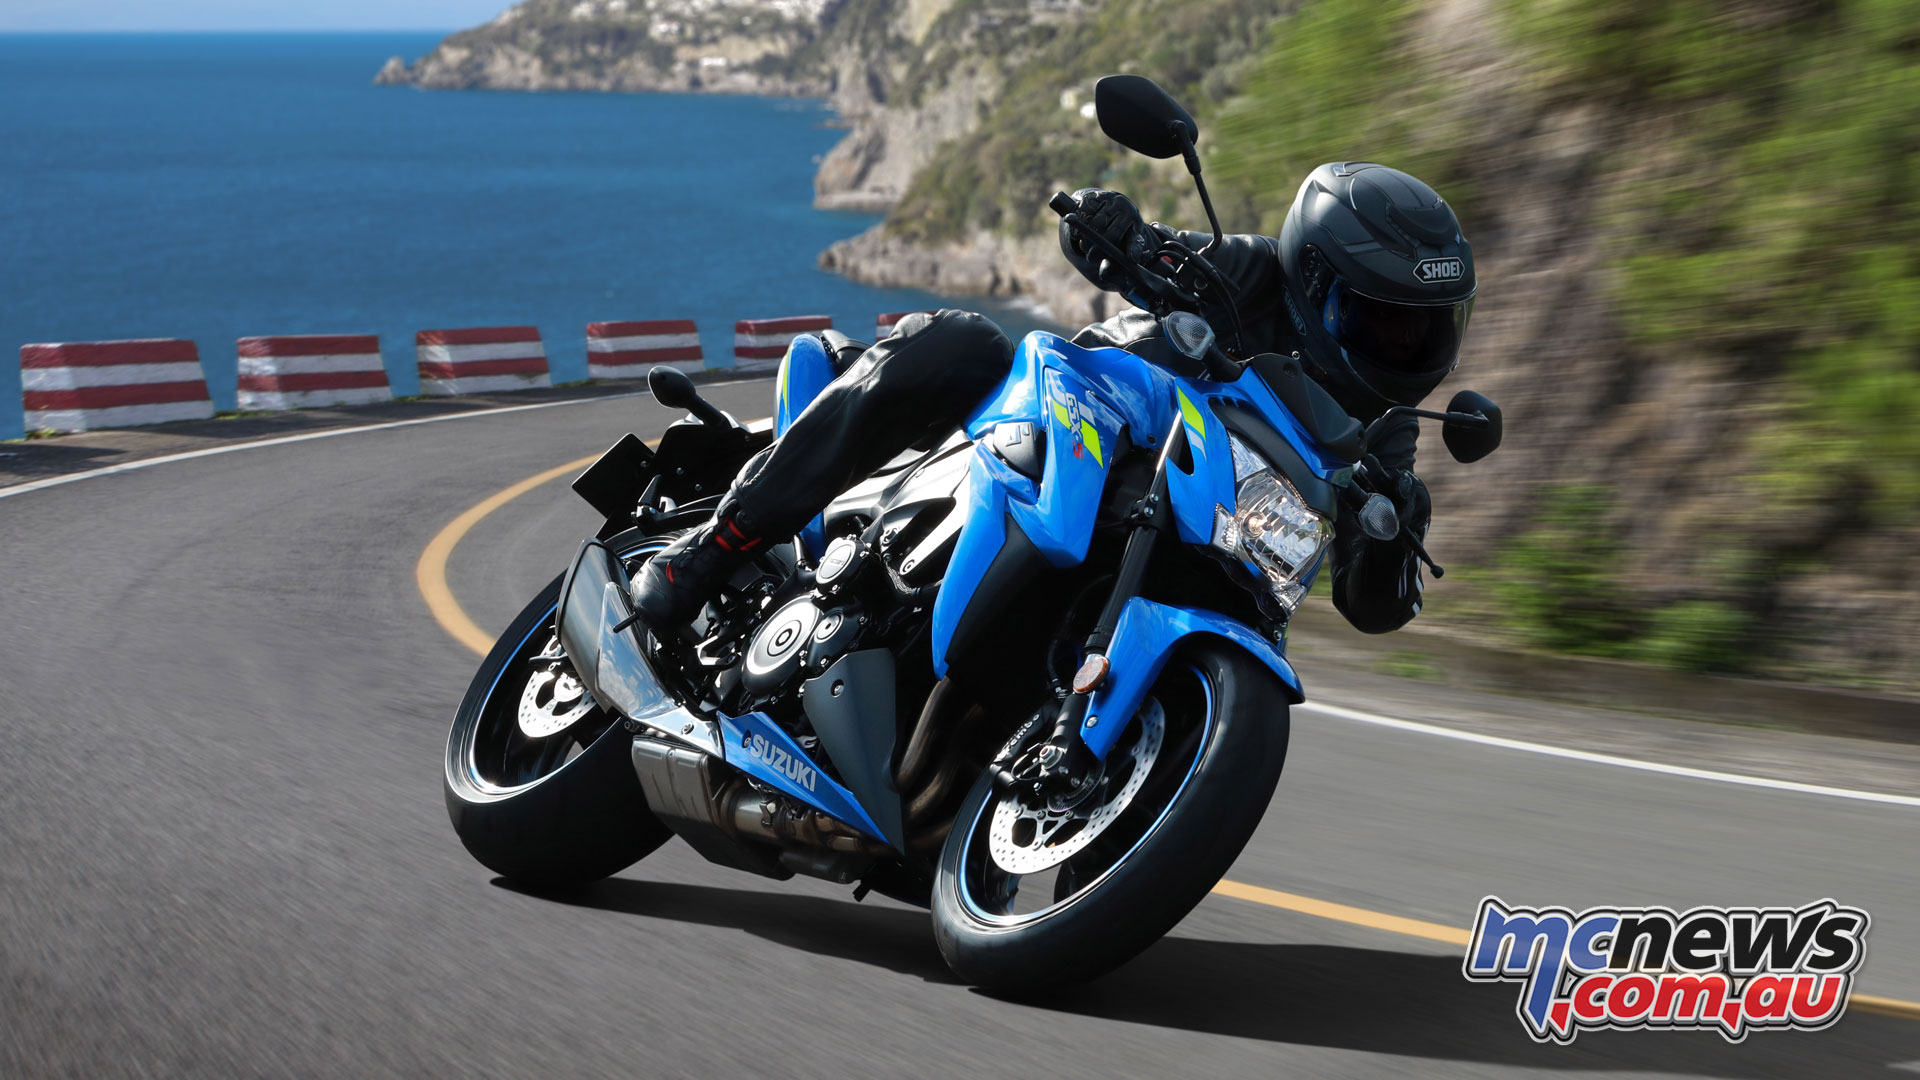 2019 Suzuki GSX-S1000 arrives March | $15,490 Ride Away | MCNews com au